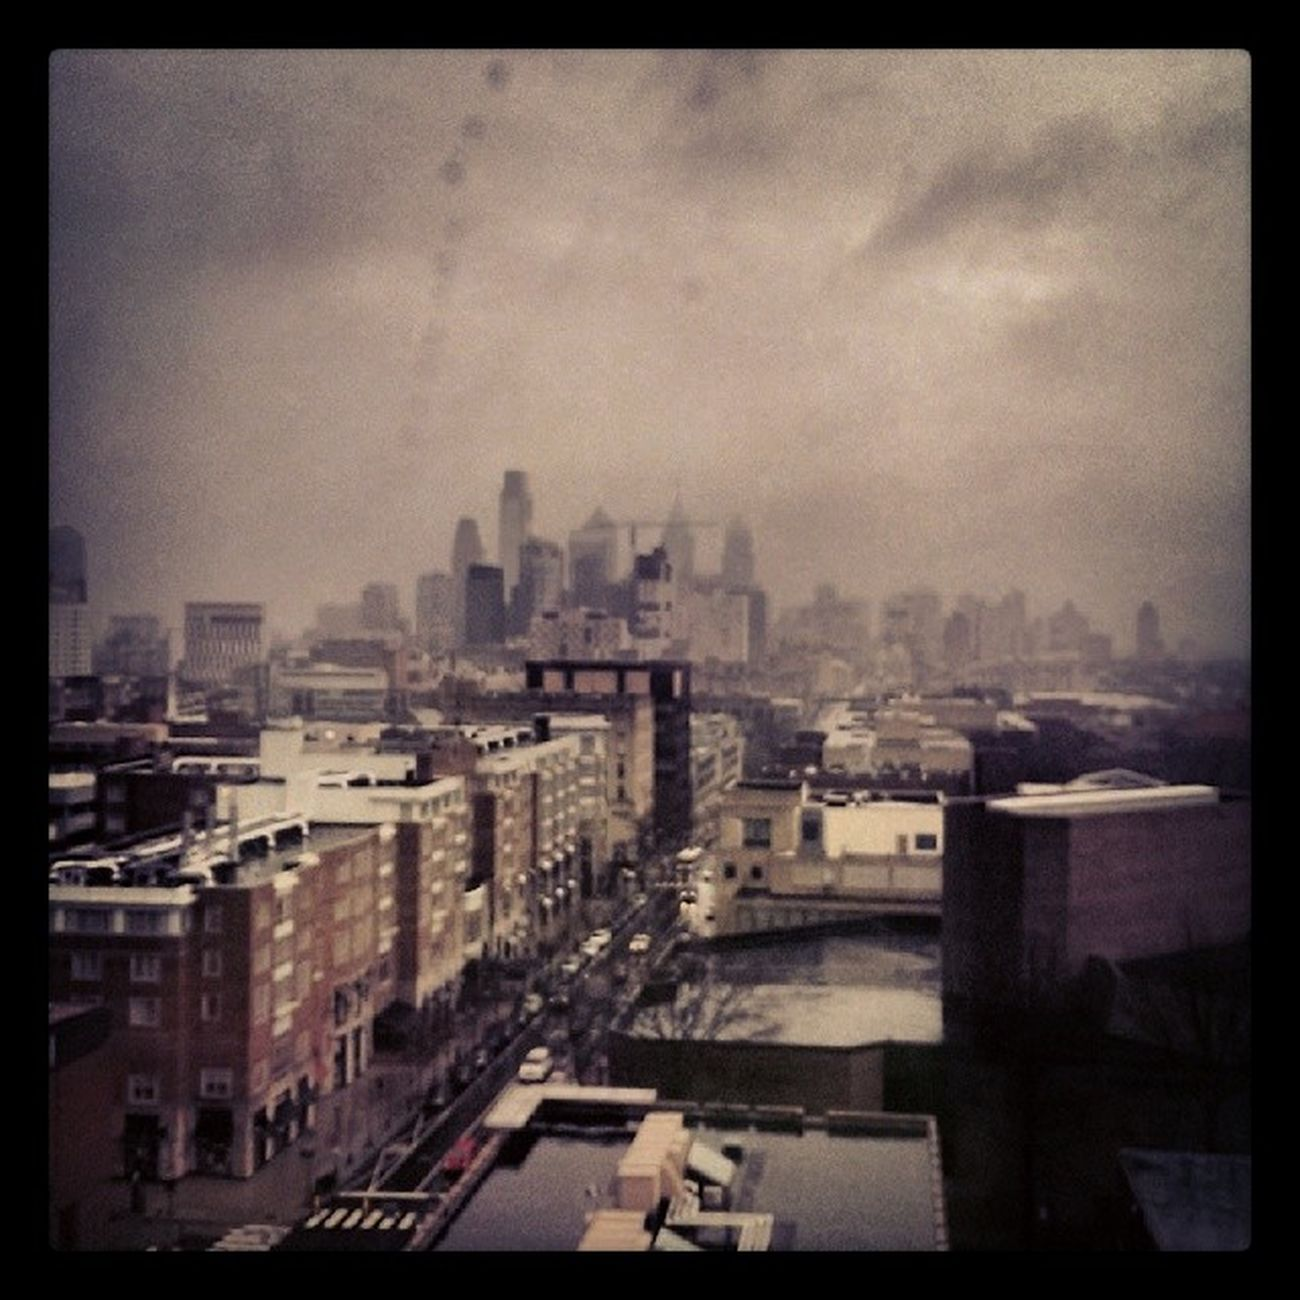 Philly skyline from the view of Wharton at Upenn Pennlawlife pennlaw stoked